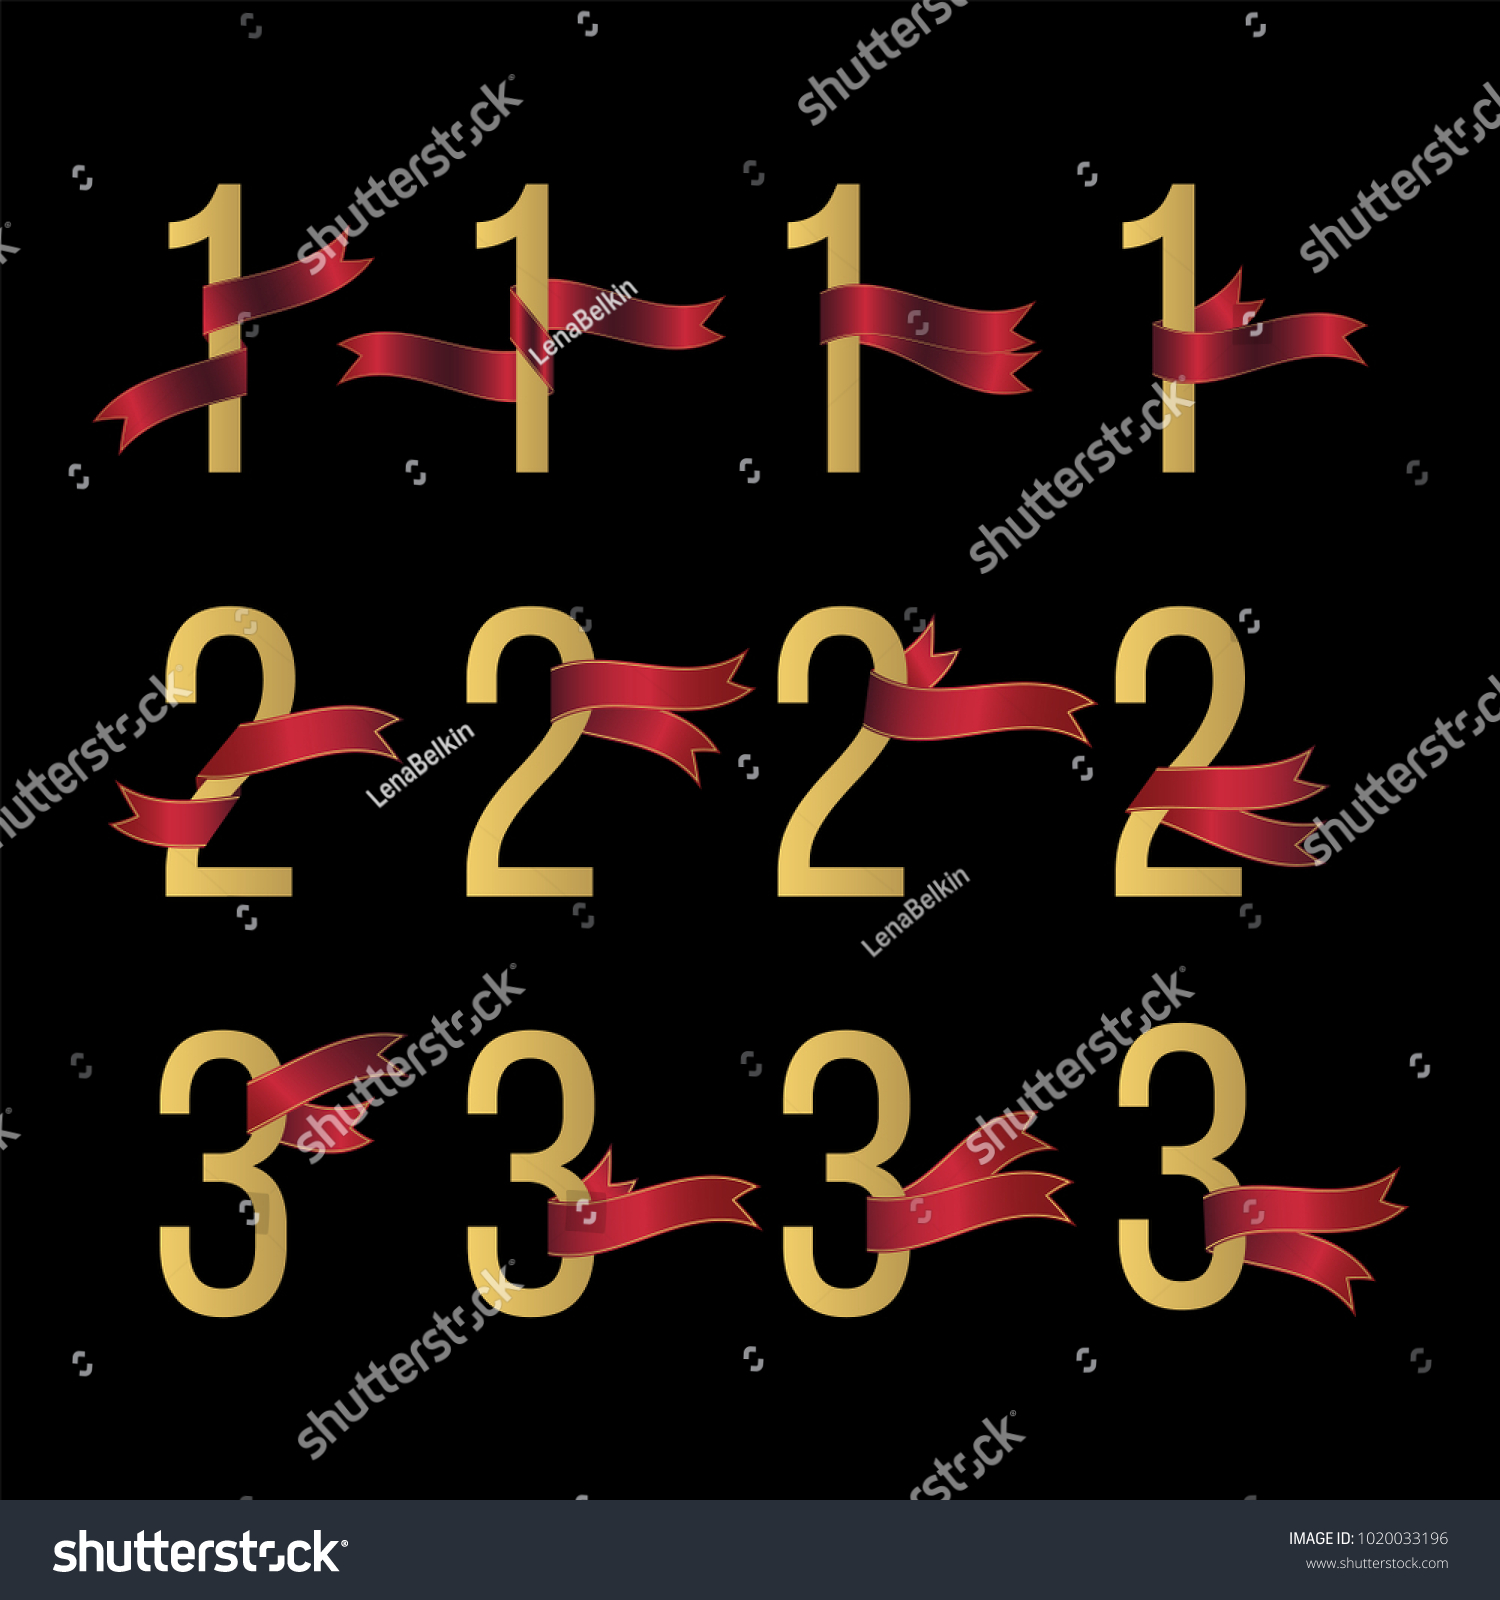 Irish mob symbols choice image symbol and sign ideas symbol for number 1 image collections symbol and sign ideas set number 1 2 3 symbols biocorpaavc